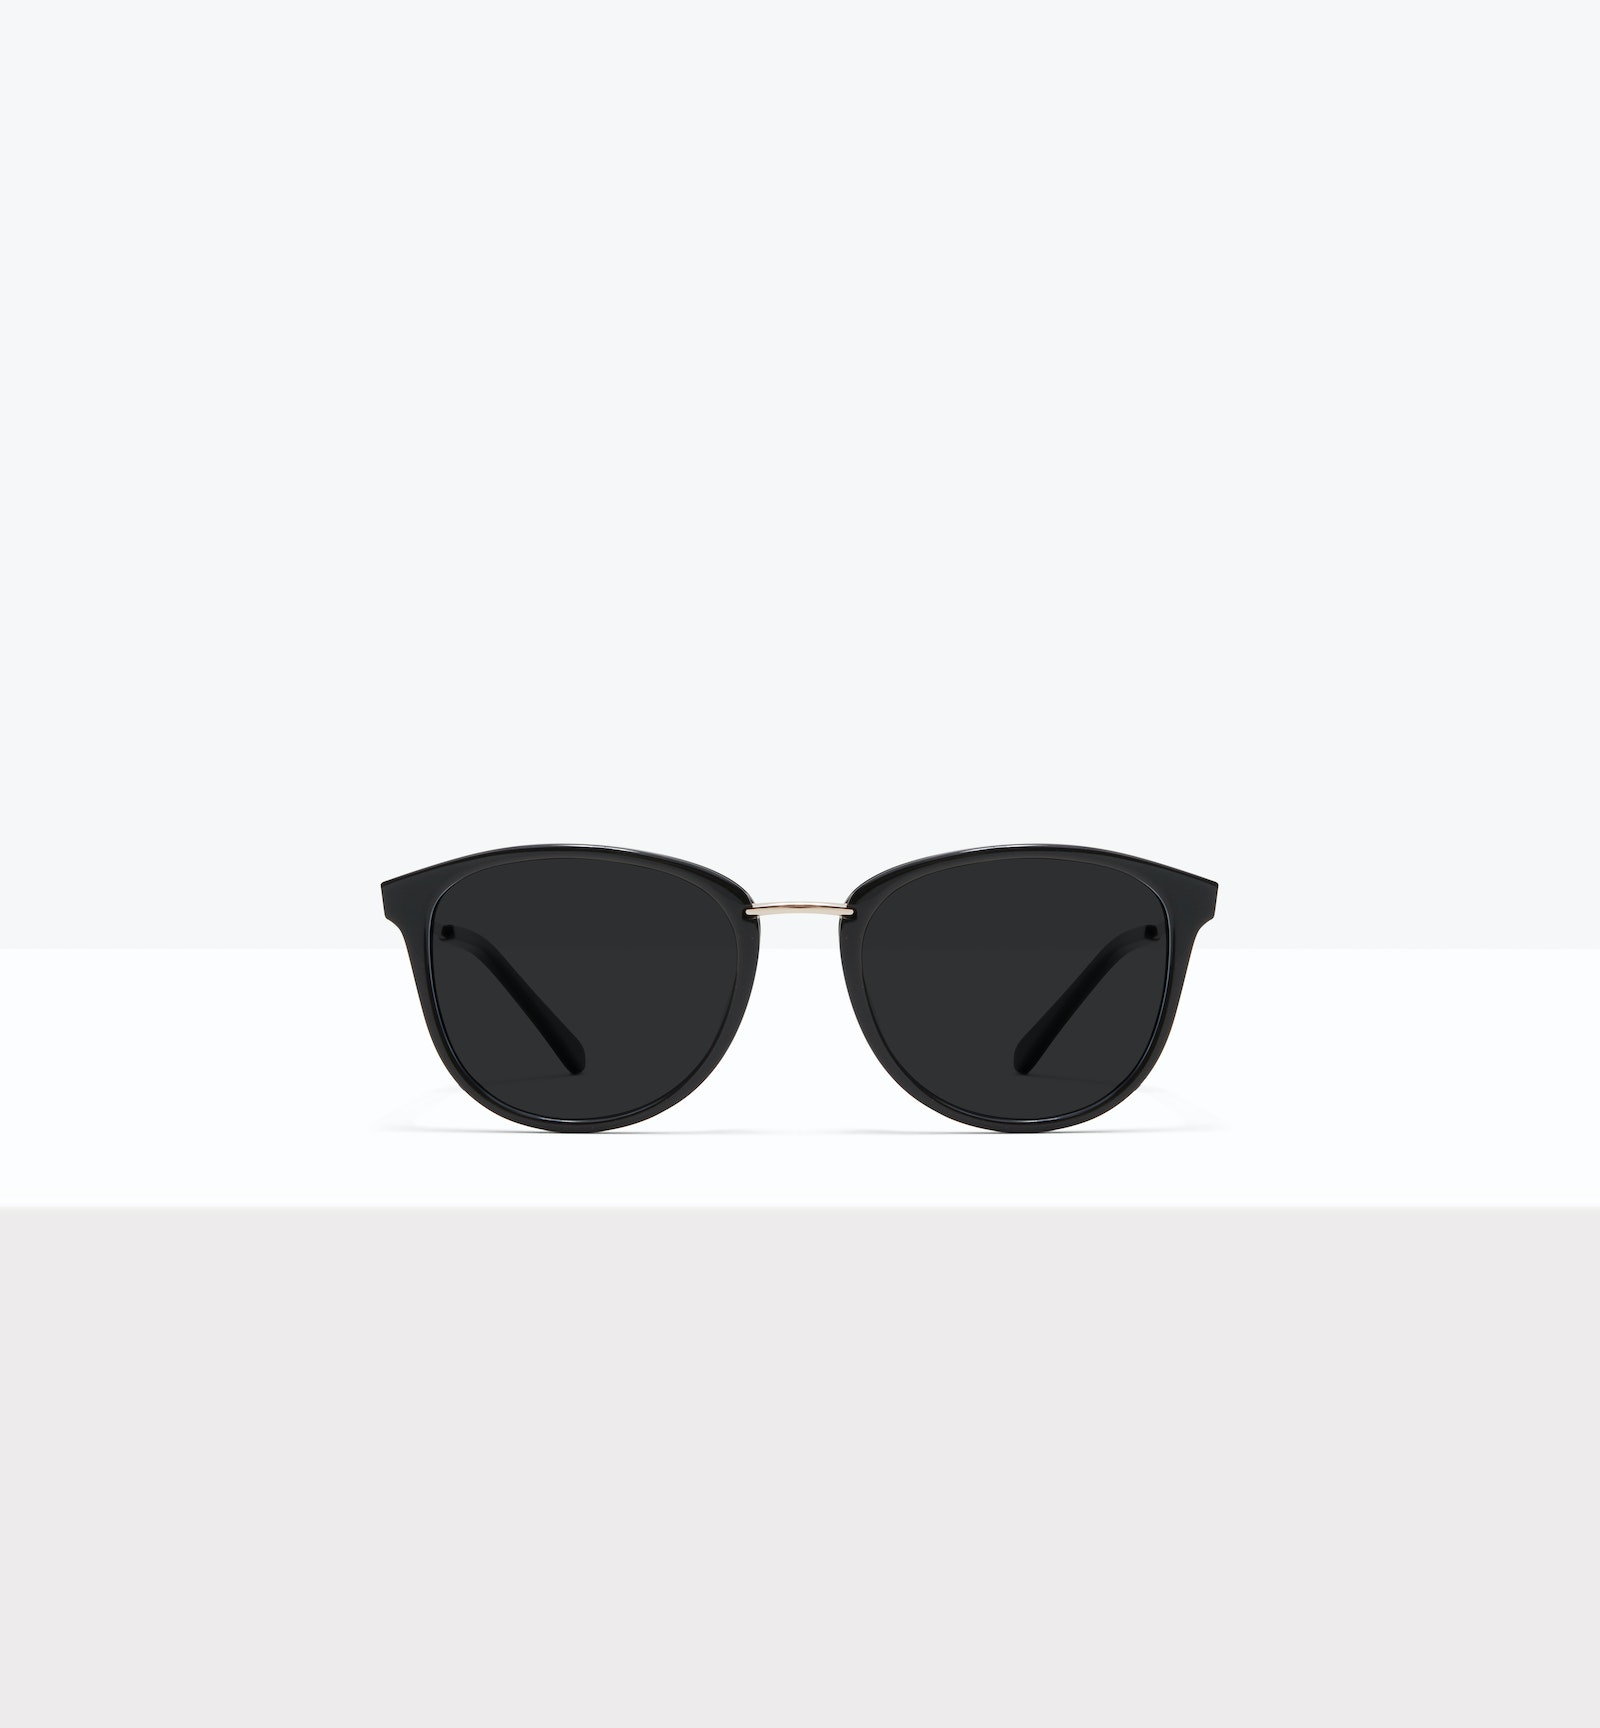 Affordable Fashion Glasses Square Round Sunglasses Women Bella M Black